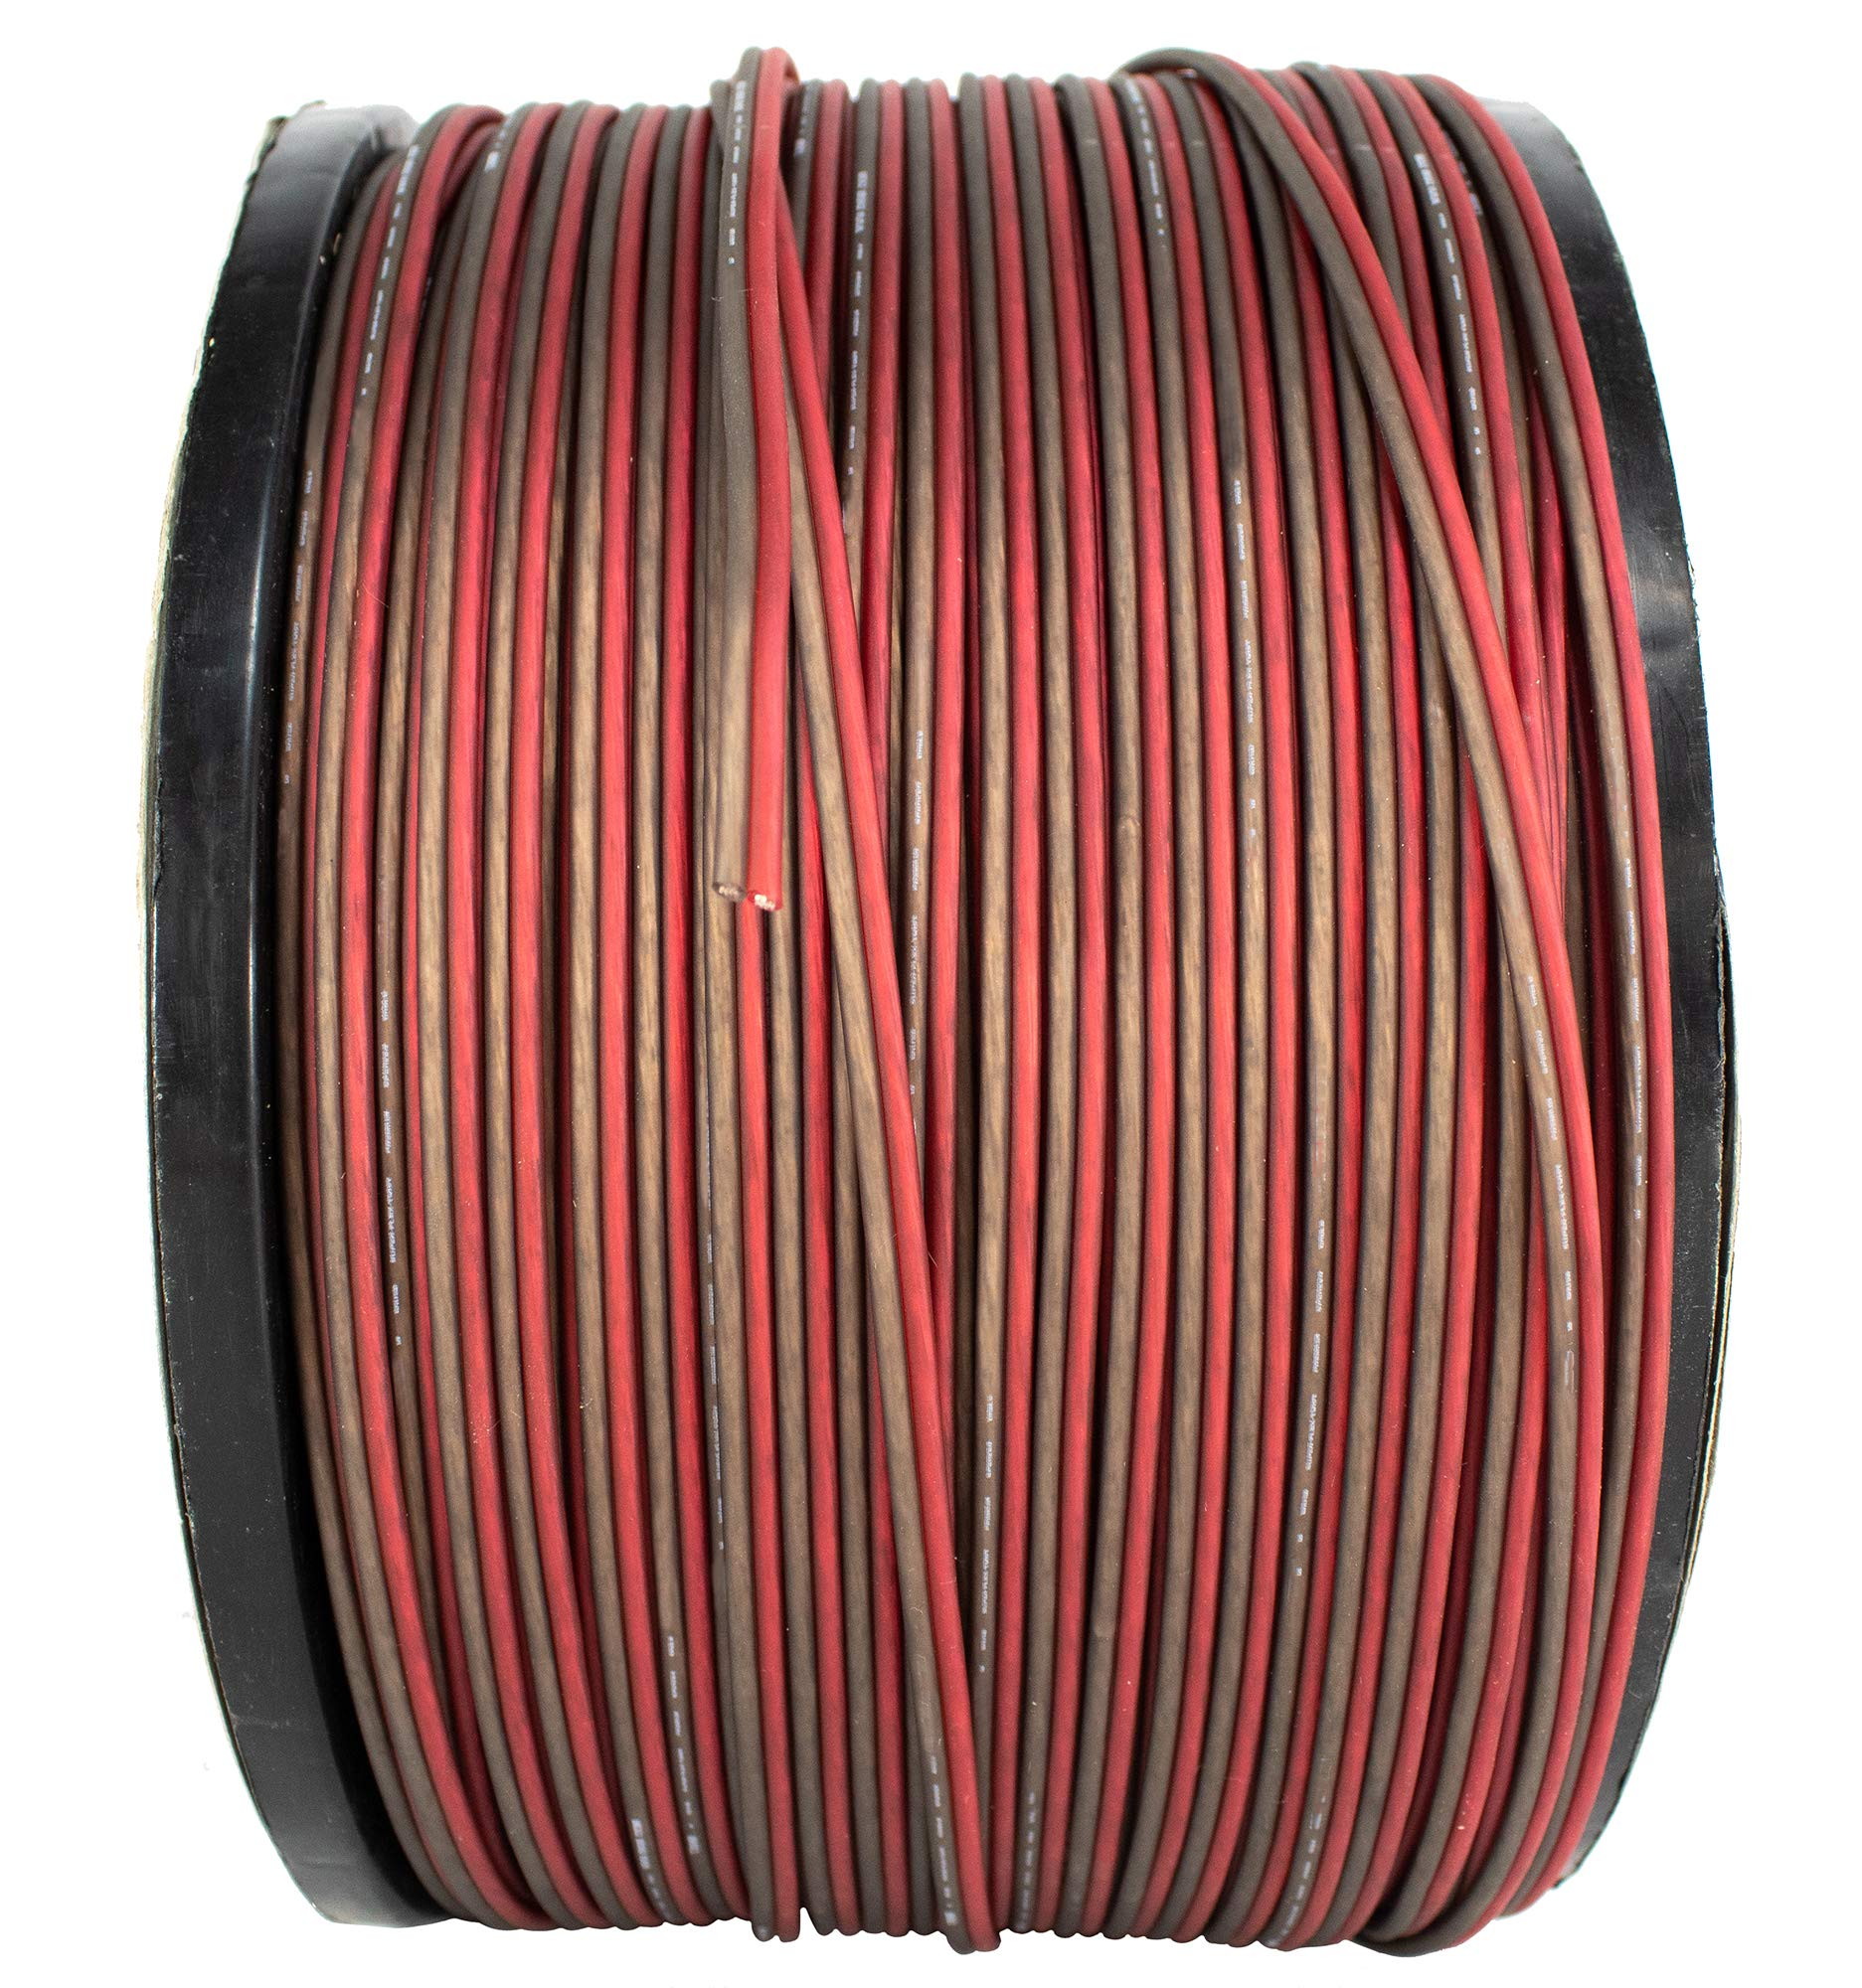 16 AWG 1000FT Red Black Speaker Wire Cable Copper Mix True AWG GA Ultra Flex